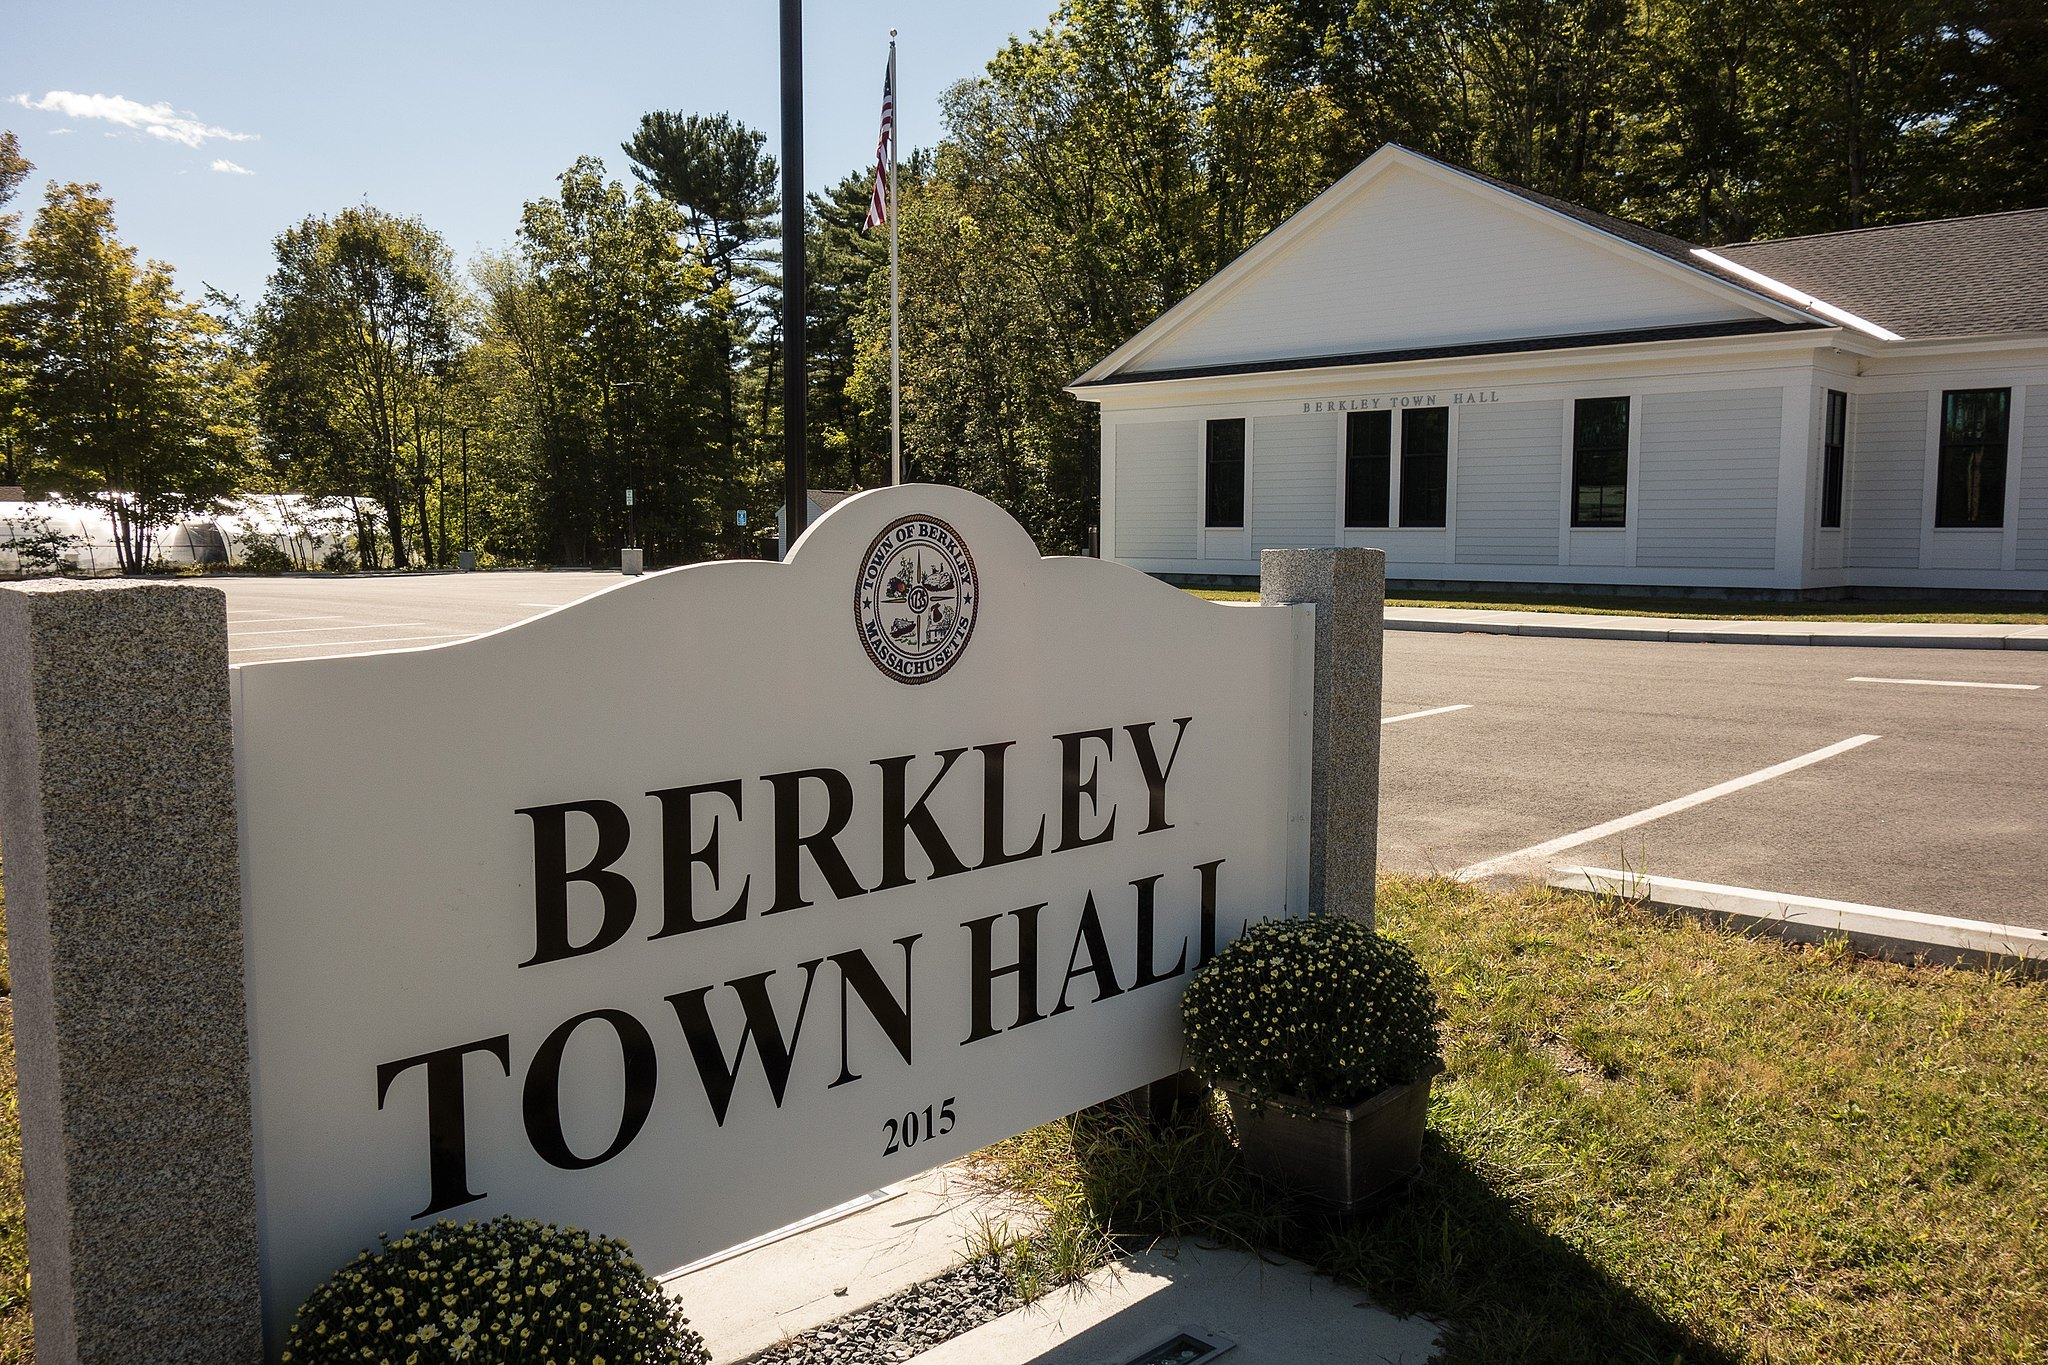 Berkley Massachusetts is one of the U.S. cities with the fastest internet speeds